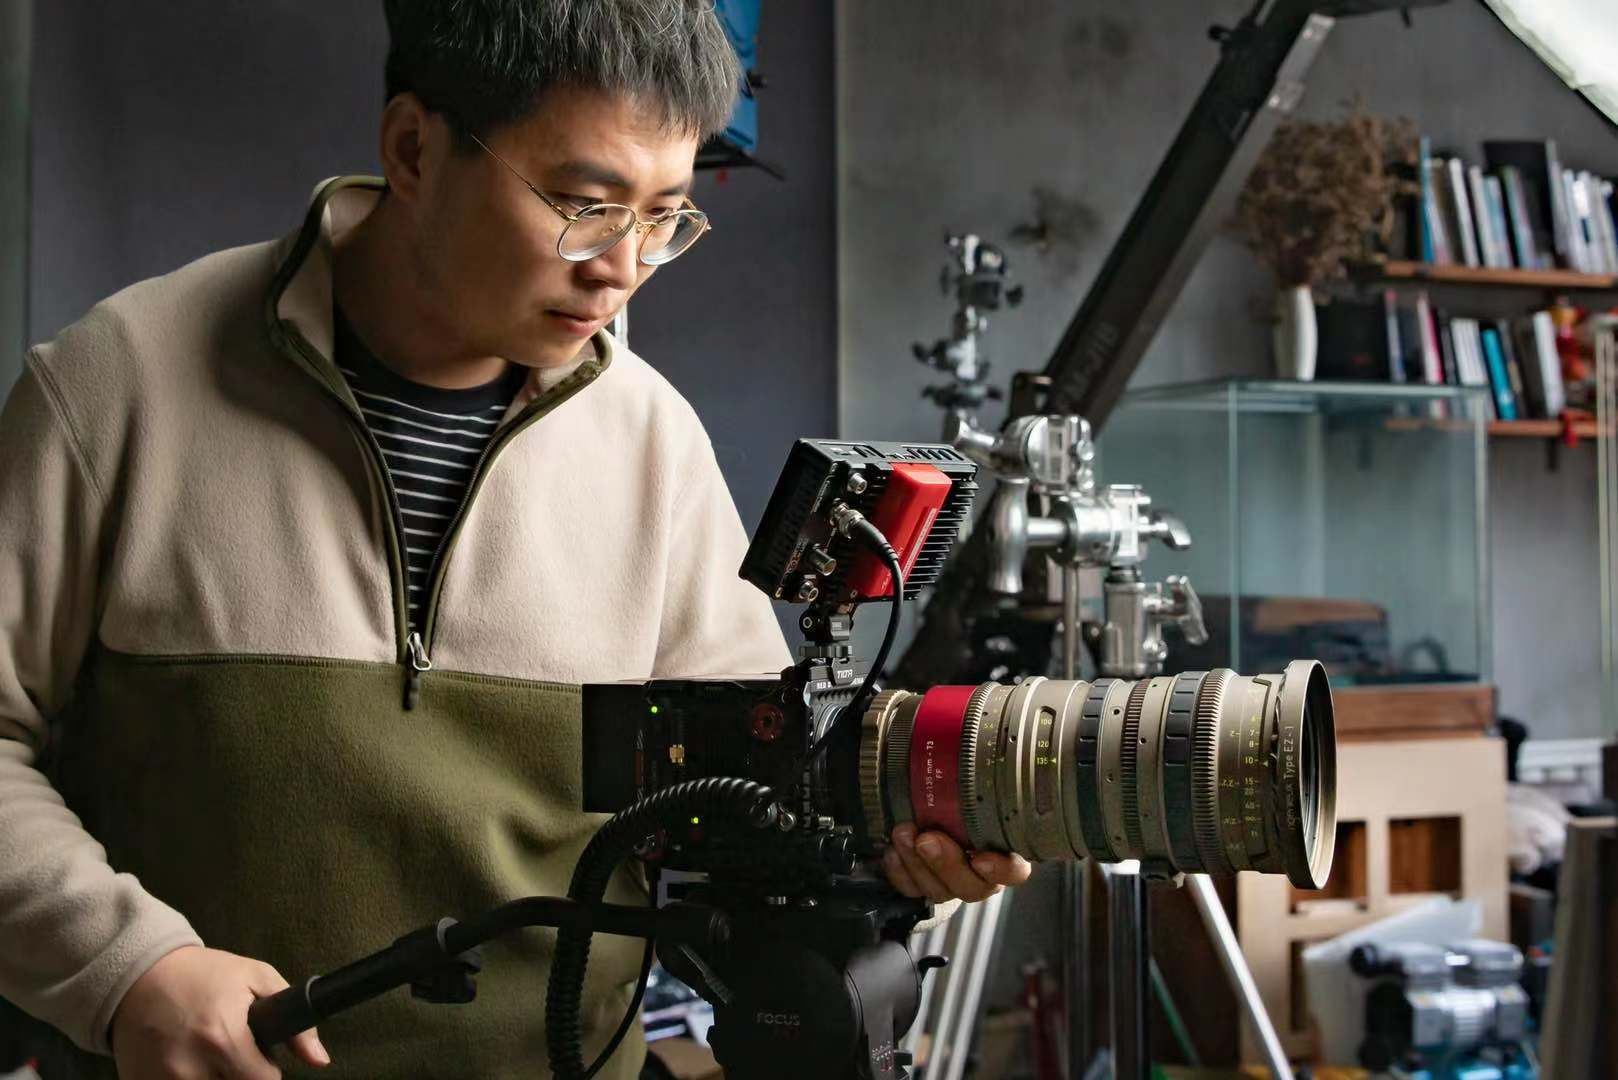 Owner-Operator Zhang Qifeng Goes Full-frame with Angénieux EZ